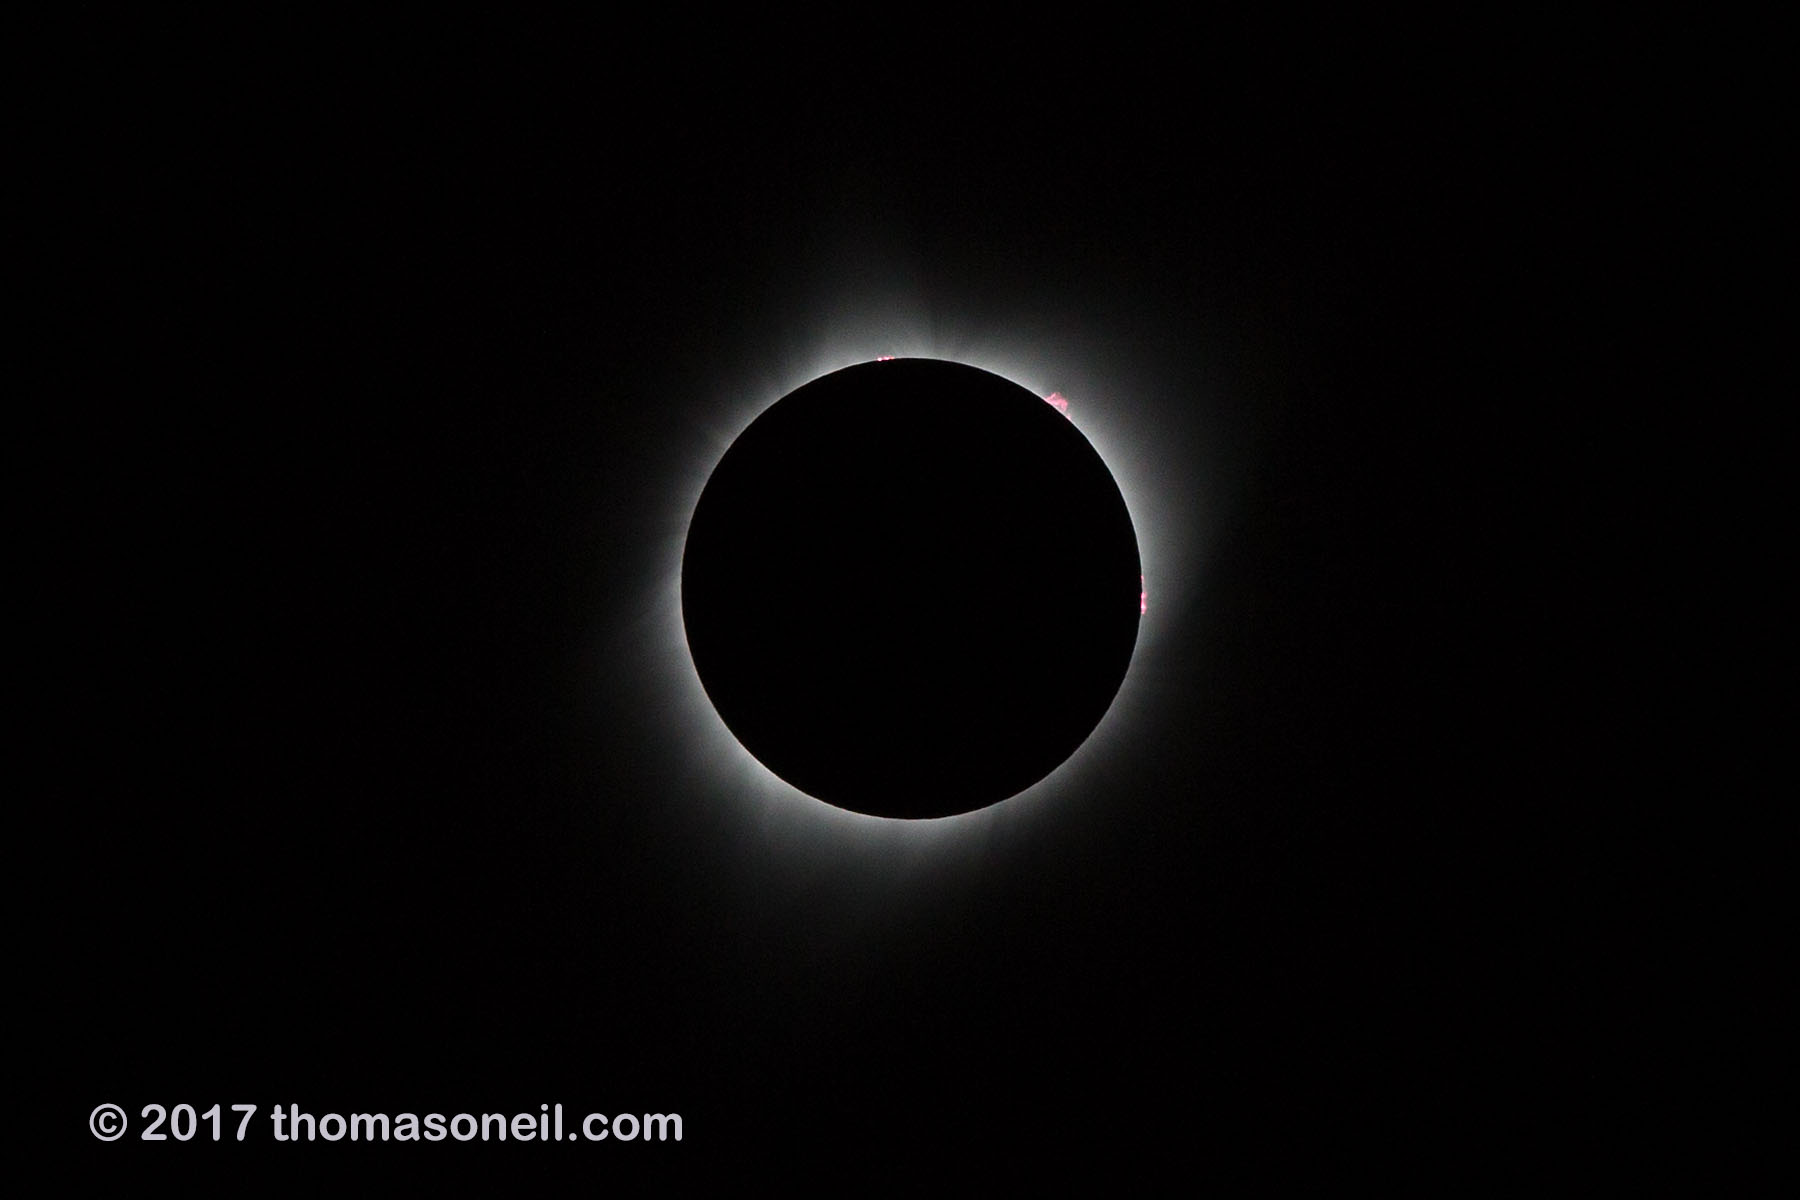 Solar eclipse, Aug. 21, 2017, very fast shutter speed (1/2500) reveals prominences rising from surface of the sun at 12:00, 1:00 and 3:00.  Click for next photo.